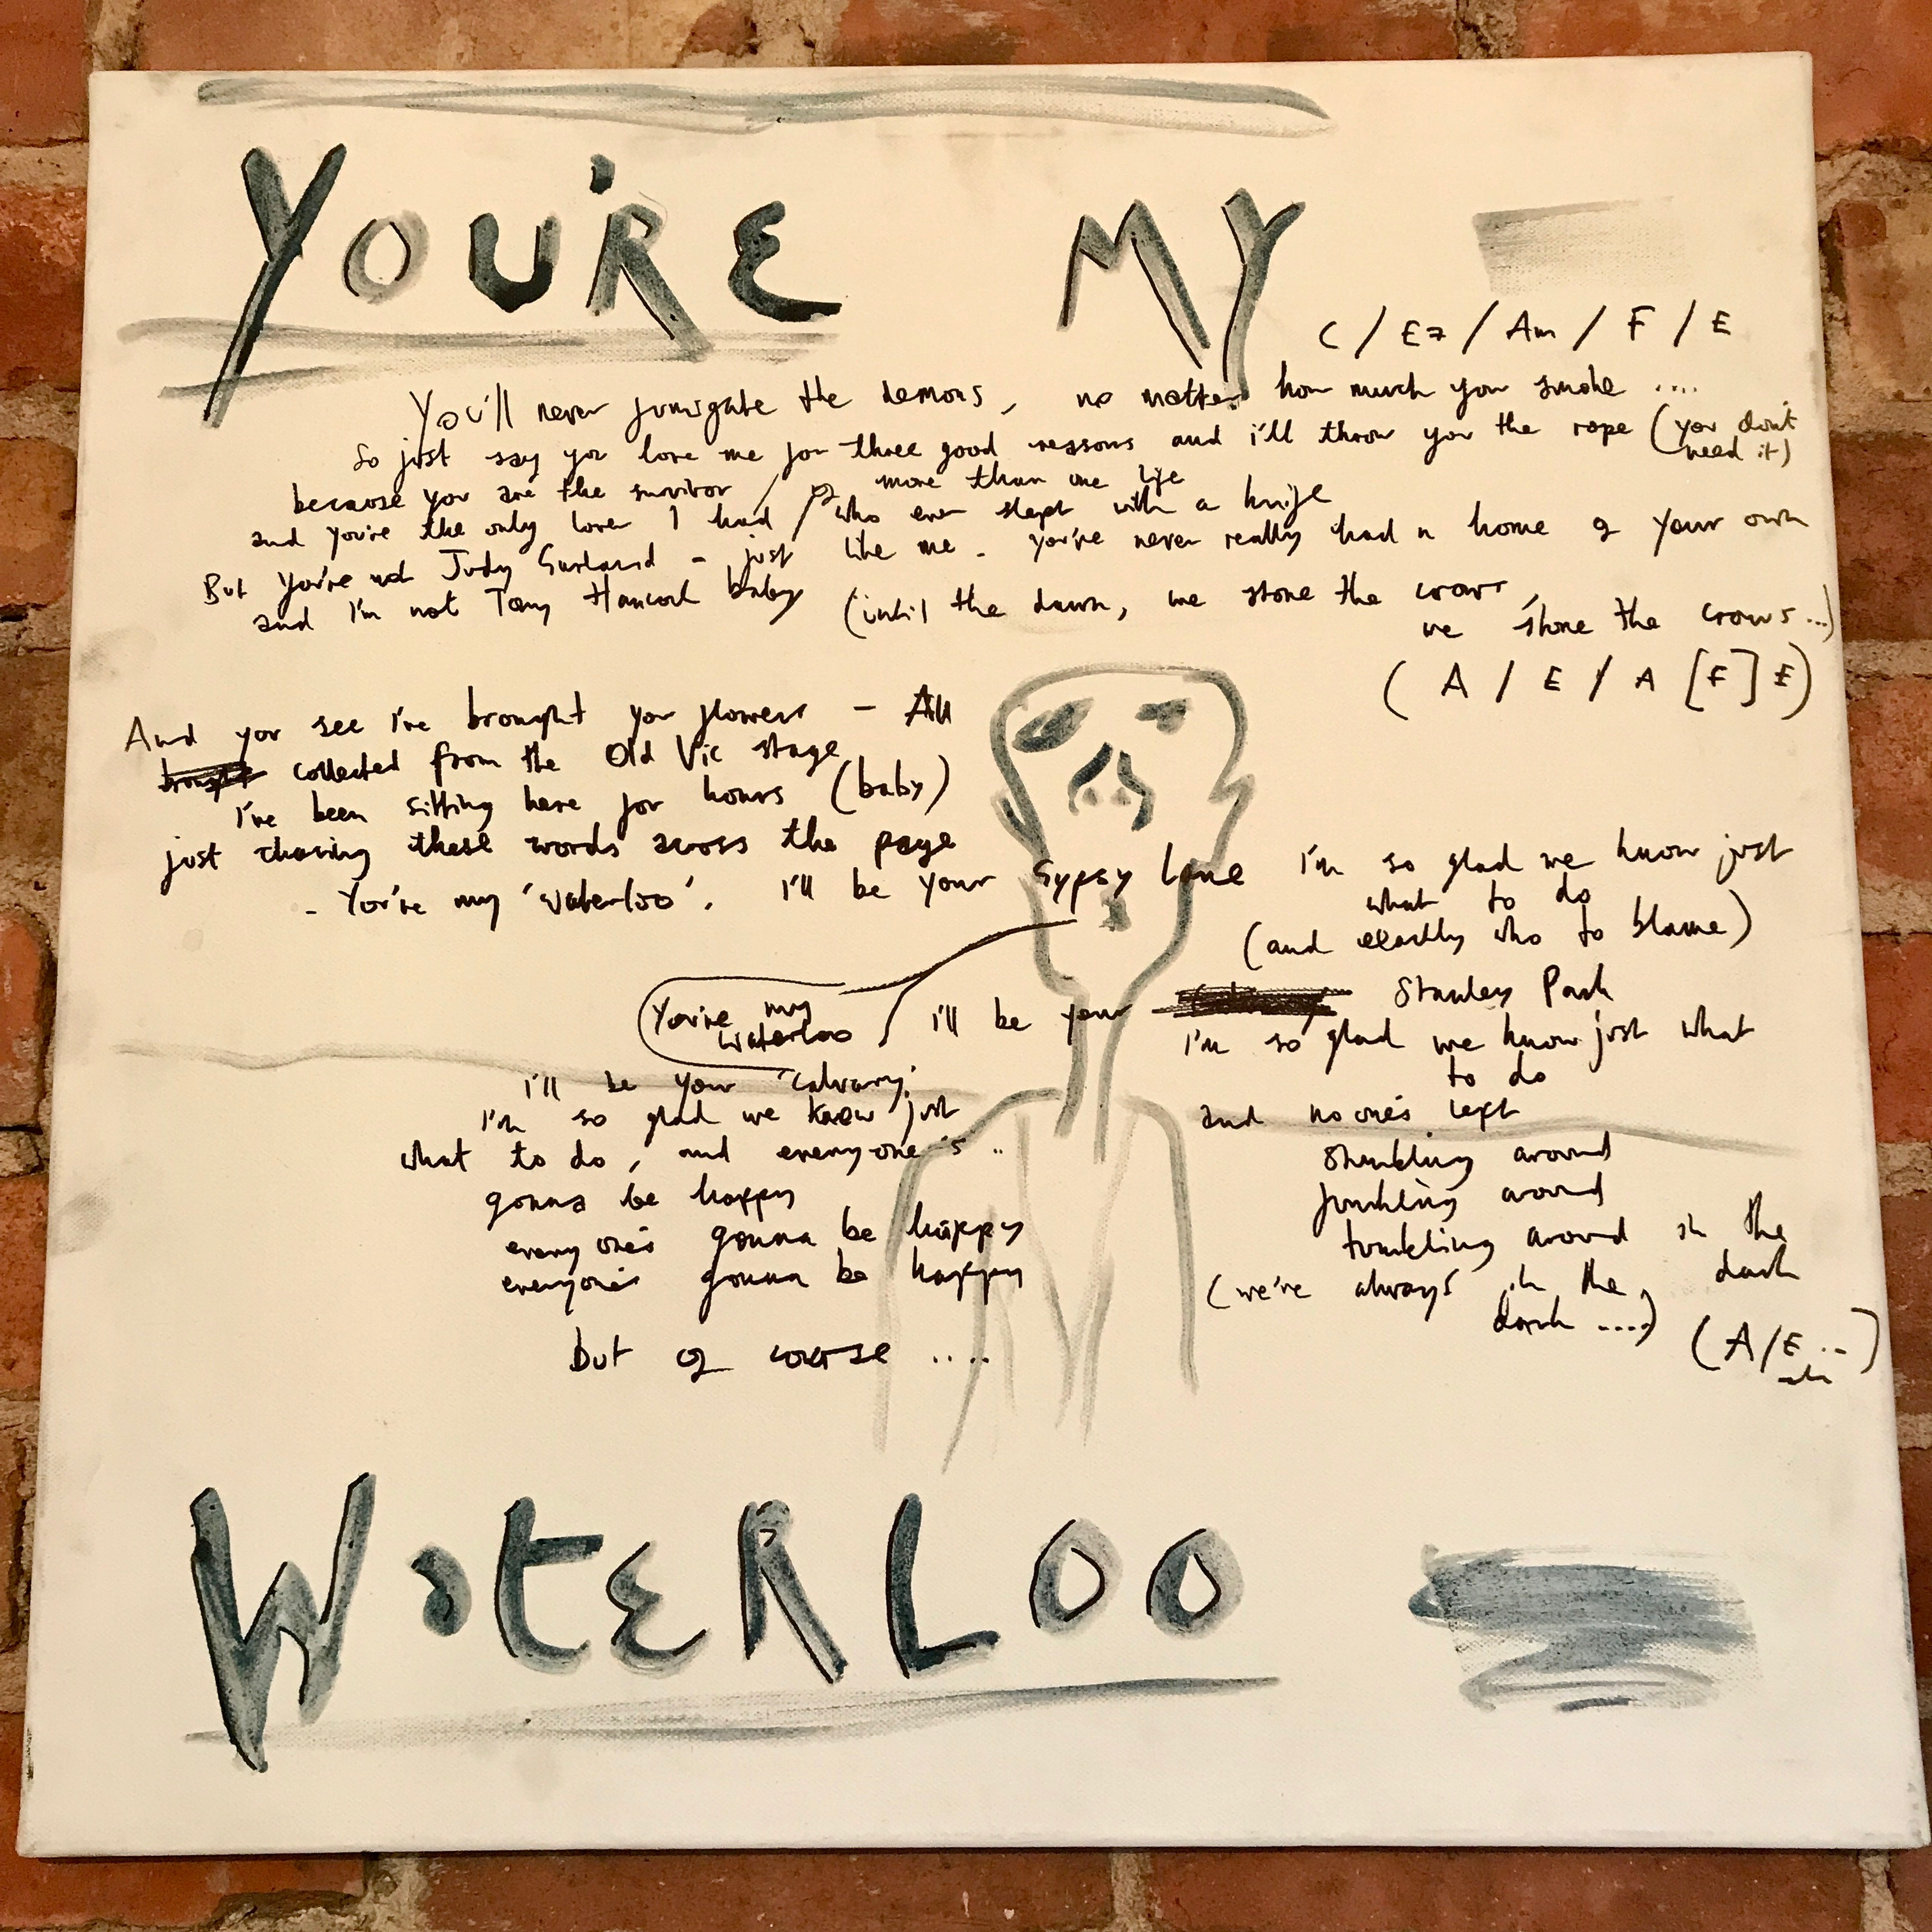 Artwork lottery - You're my Waterloo - Albion Rooms Margate